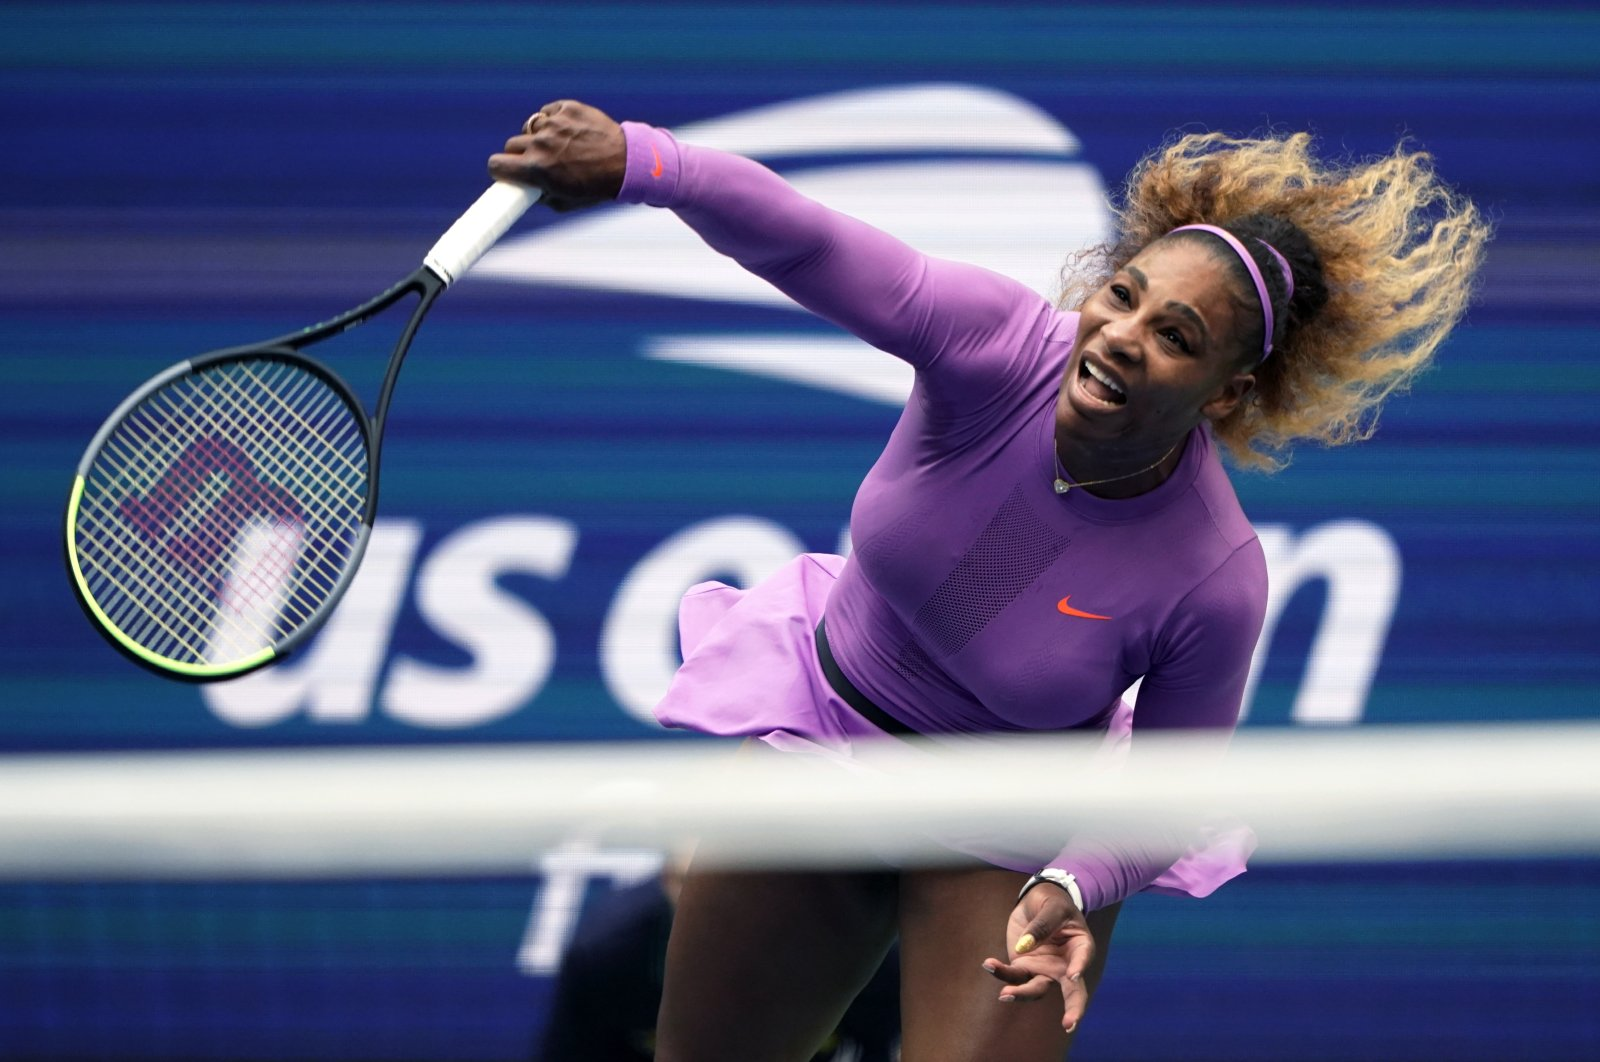 Serena Williams during the U.S. Open final in New York City, New York, U.S., Sept. 7, 2019. (AP Photo)